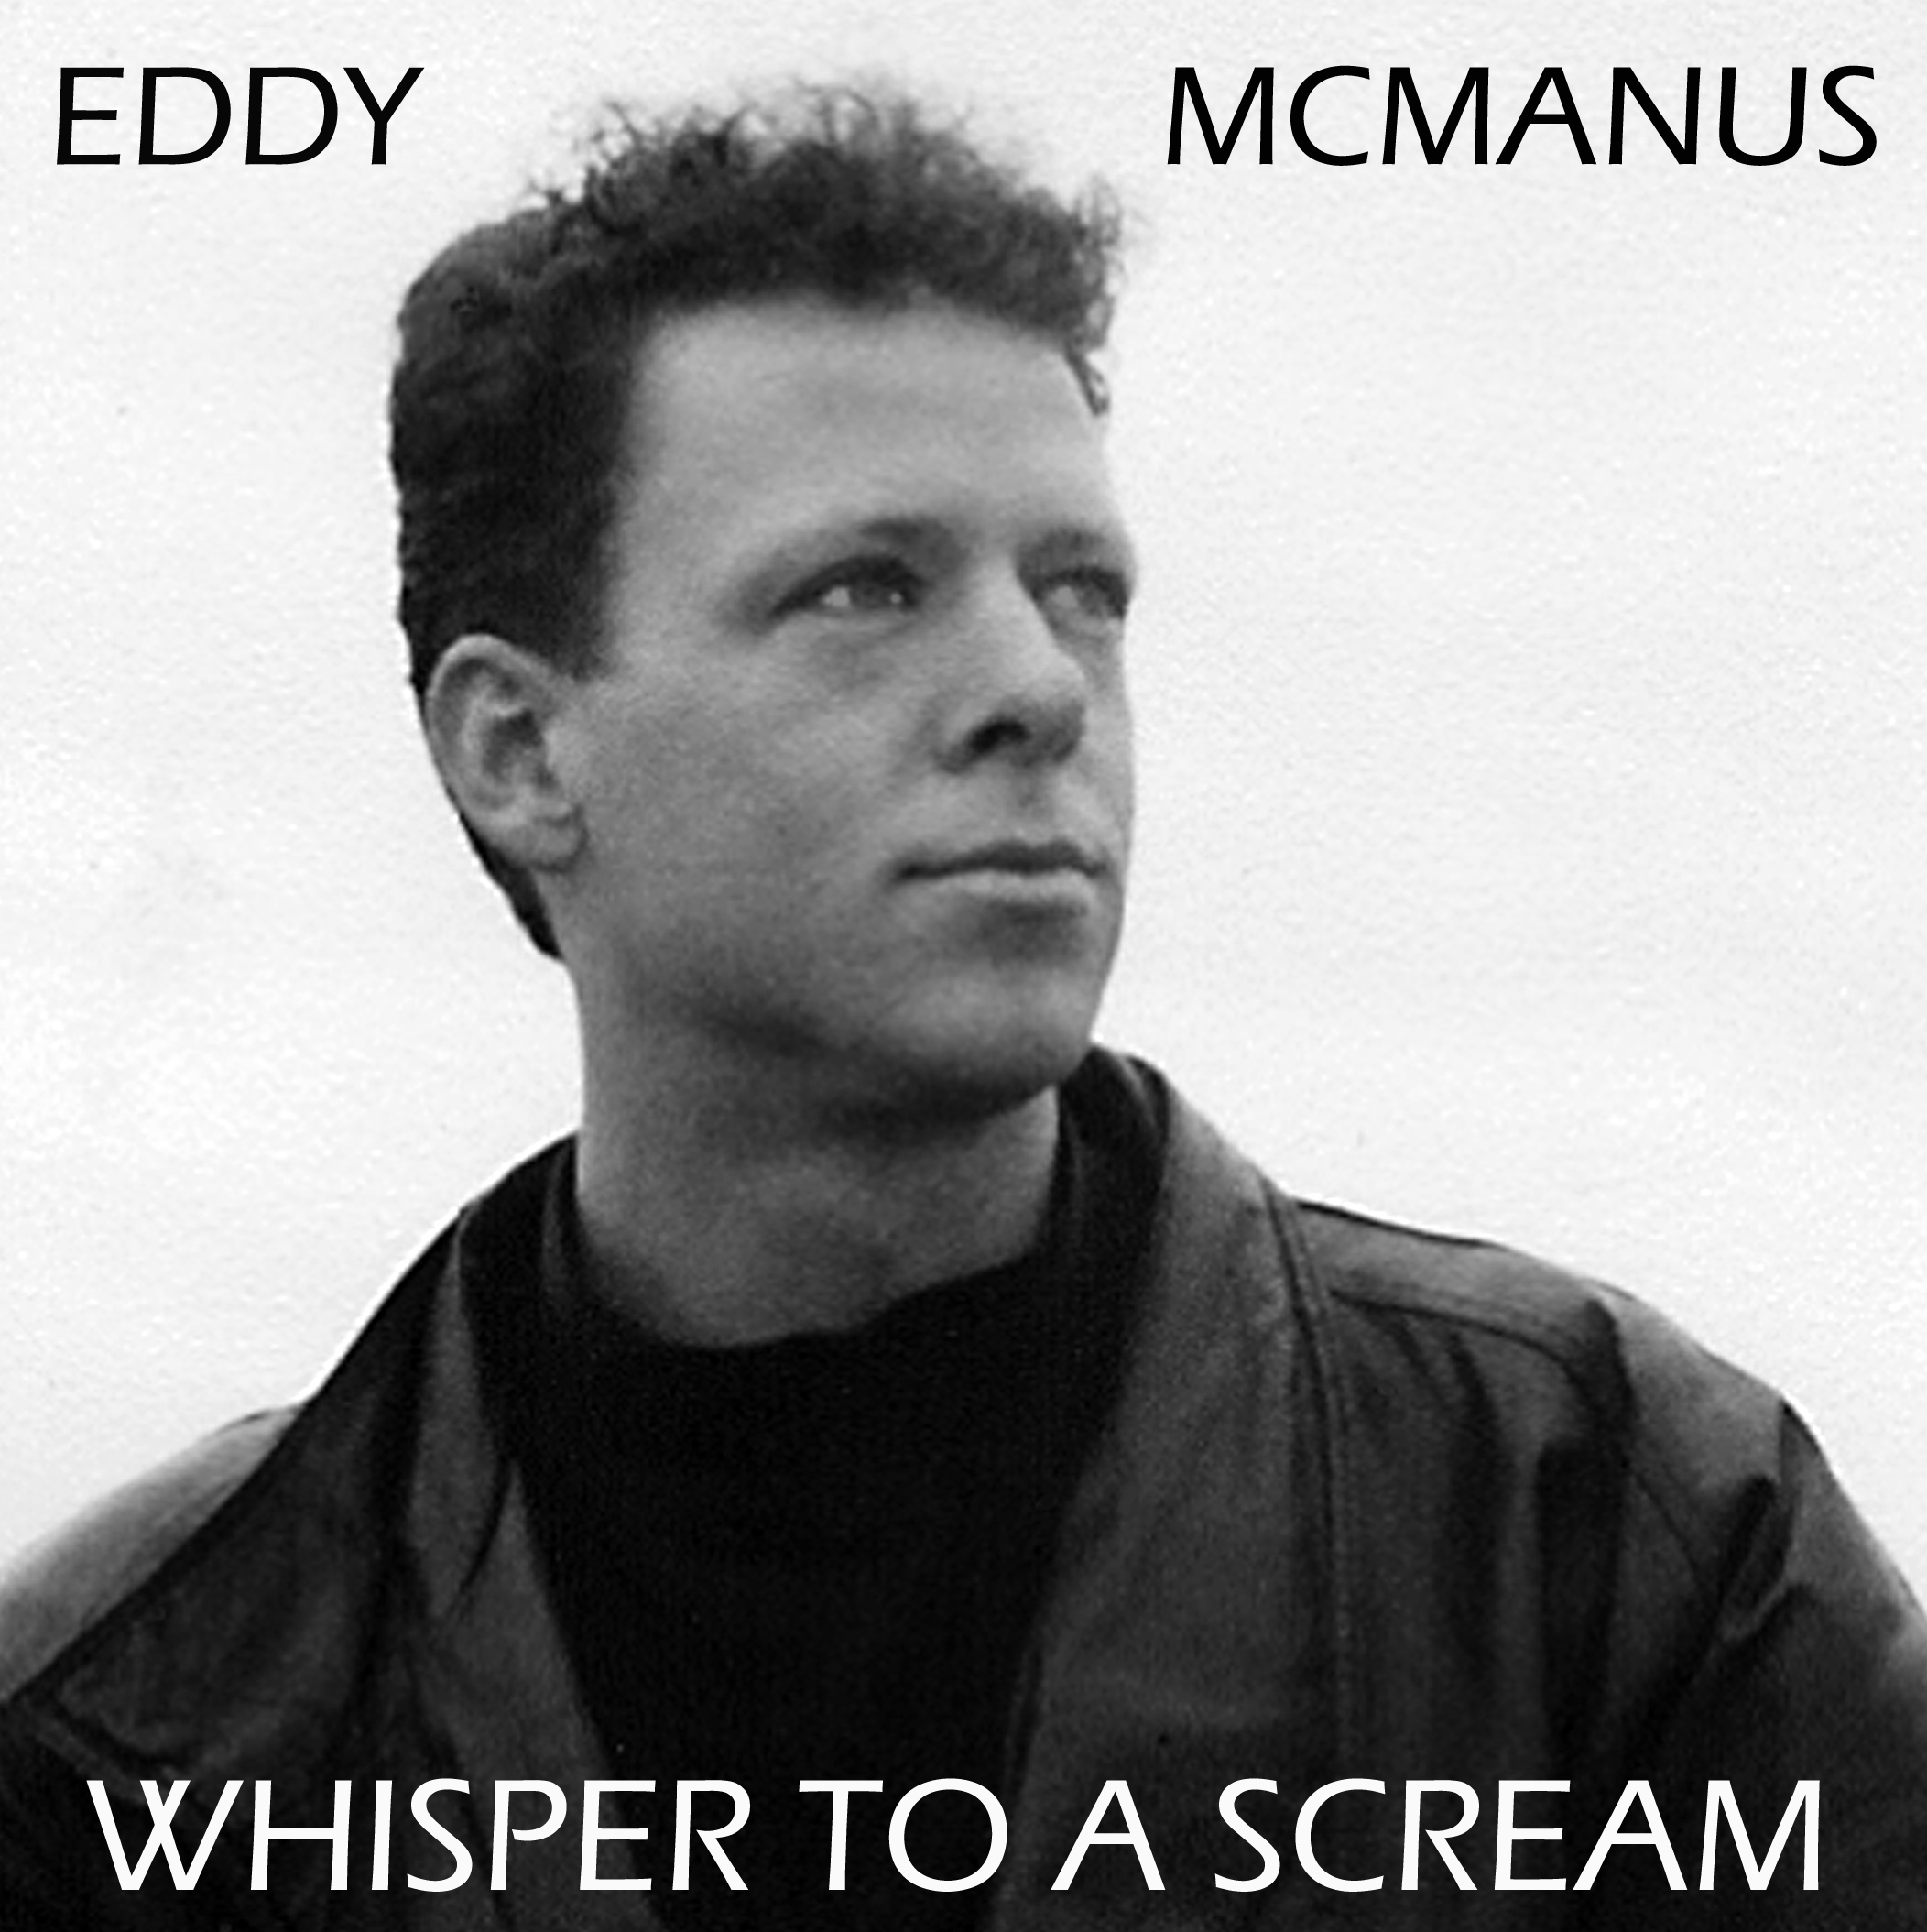 eddy mcmanus album cover whisper to a scream